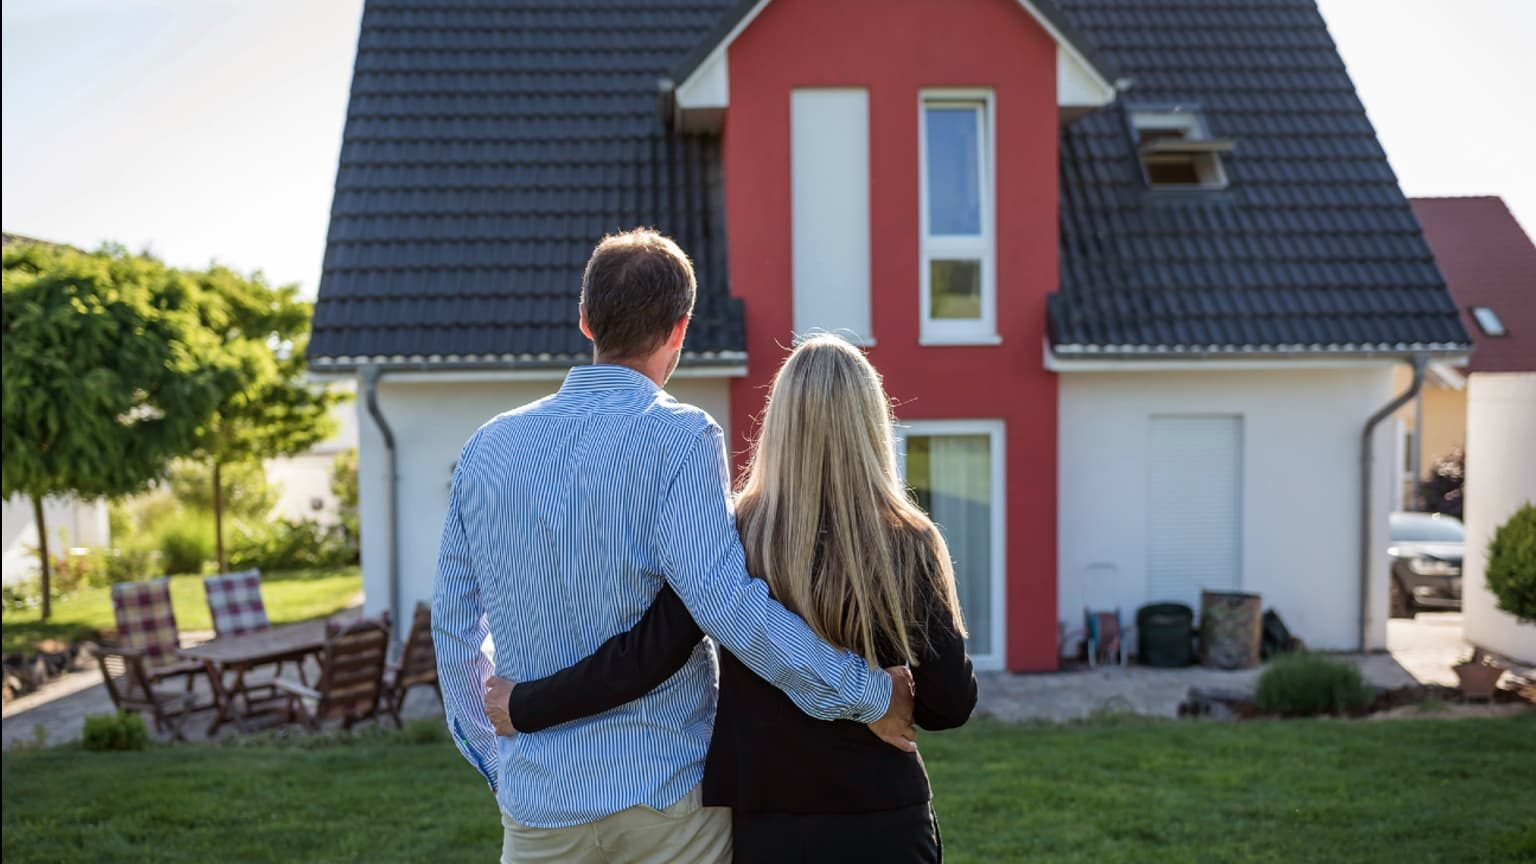 A couple with hands around each other standing in front of a house